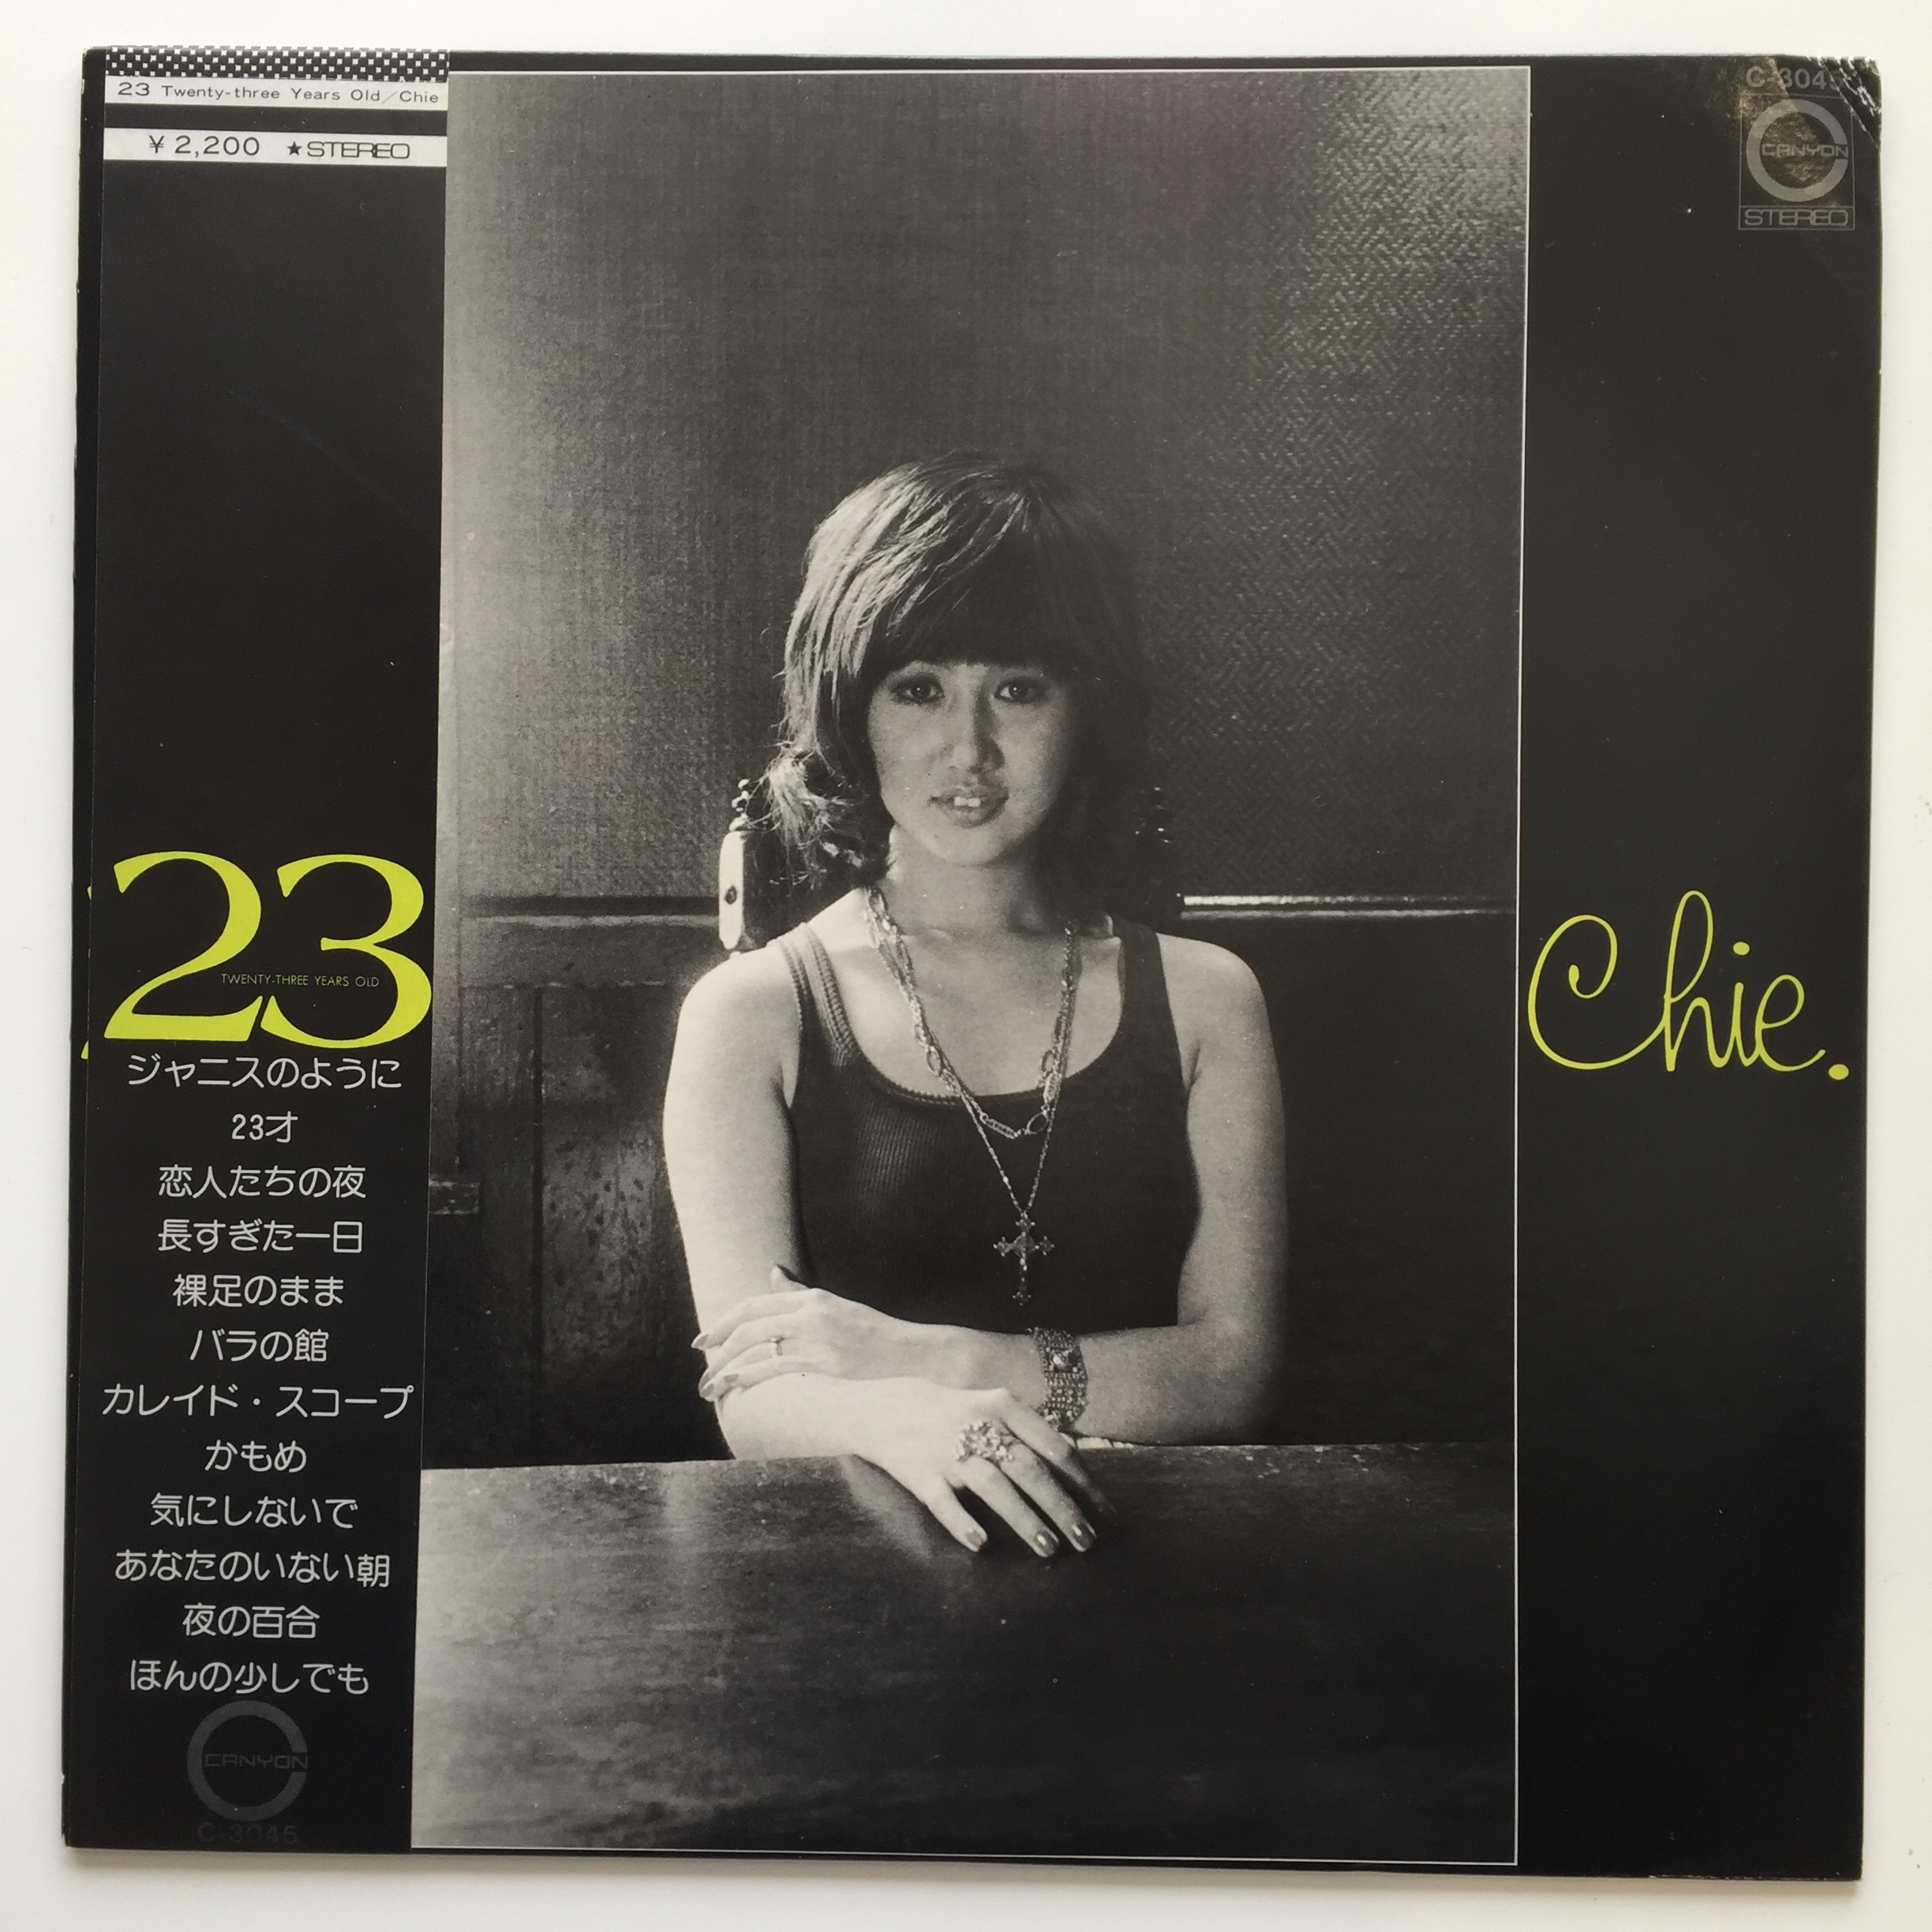 沢チエ 23 twenty three years old ella records